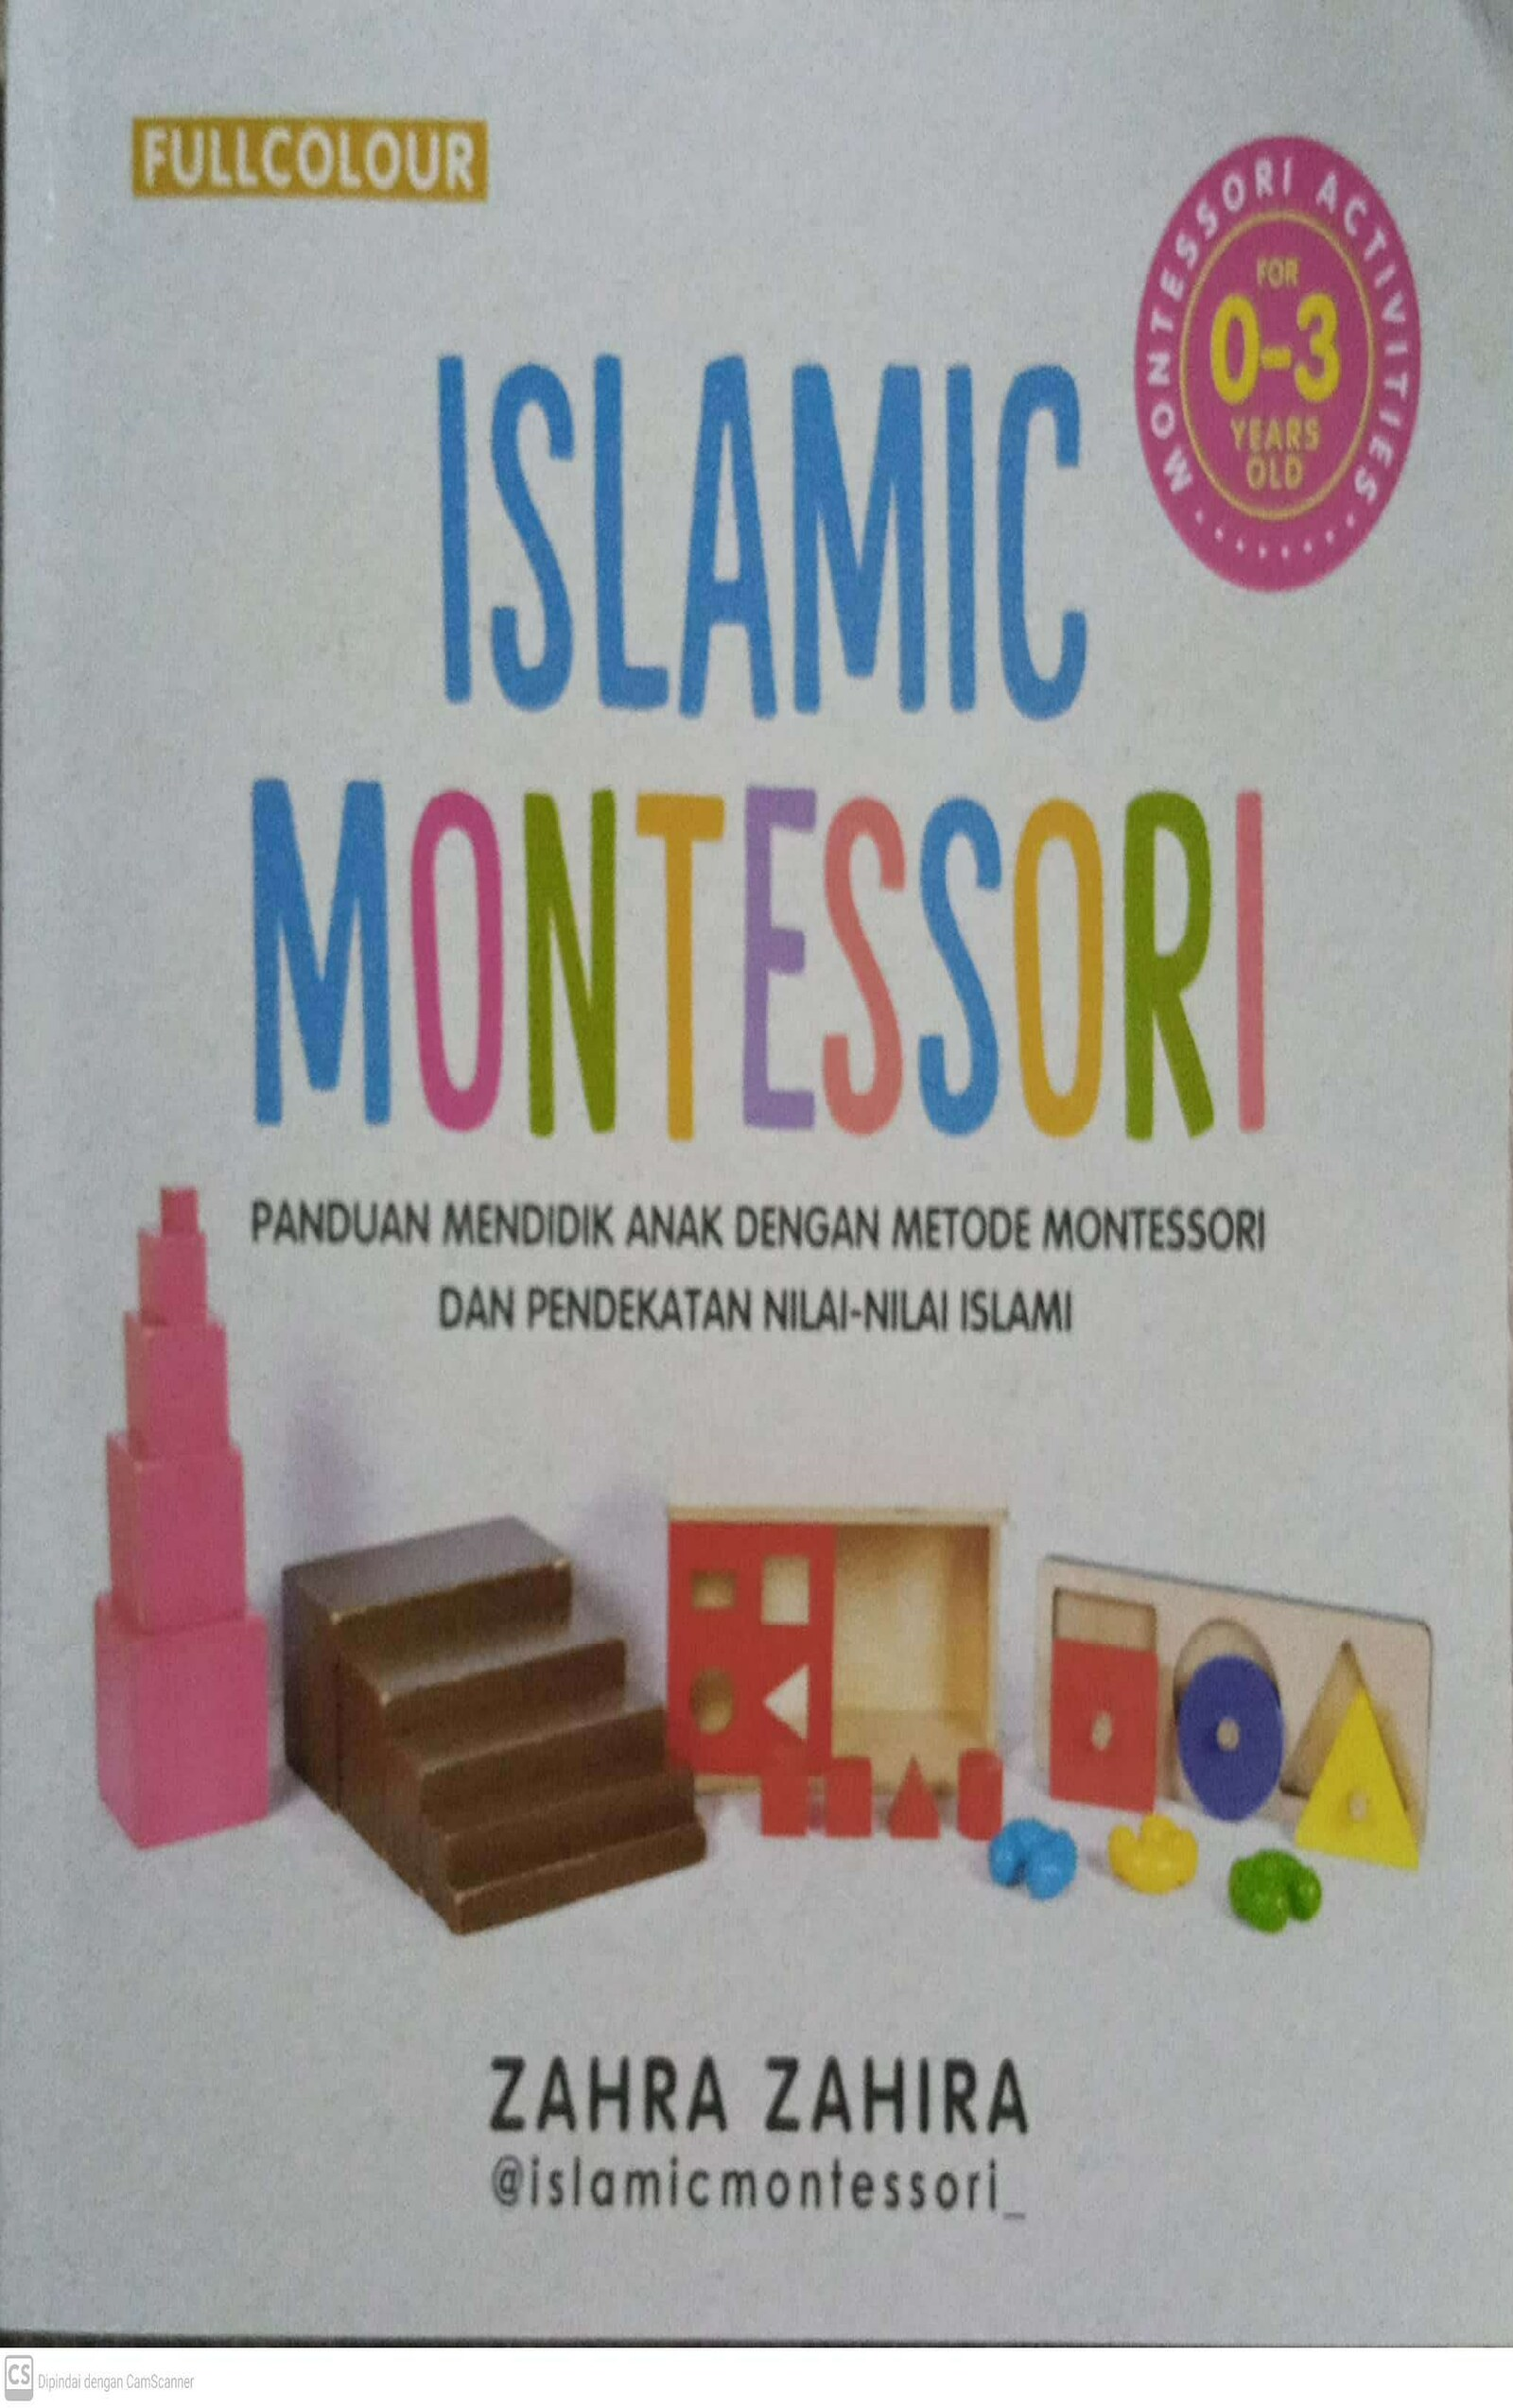 Islamic Montessori For 0-3 Years Old